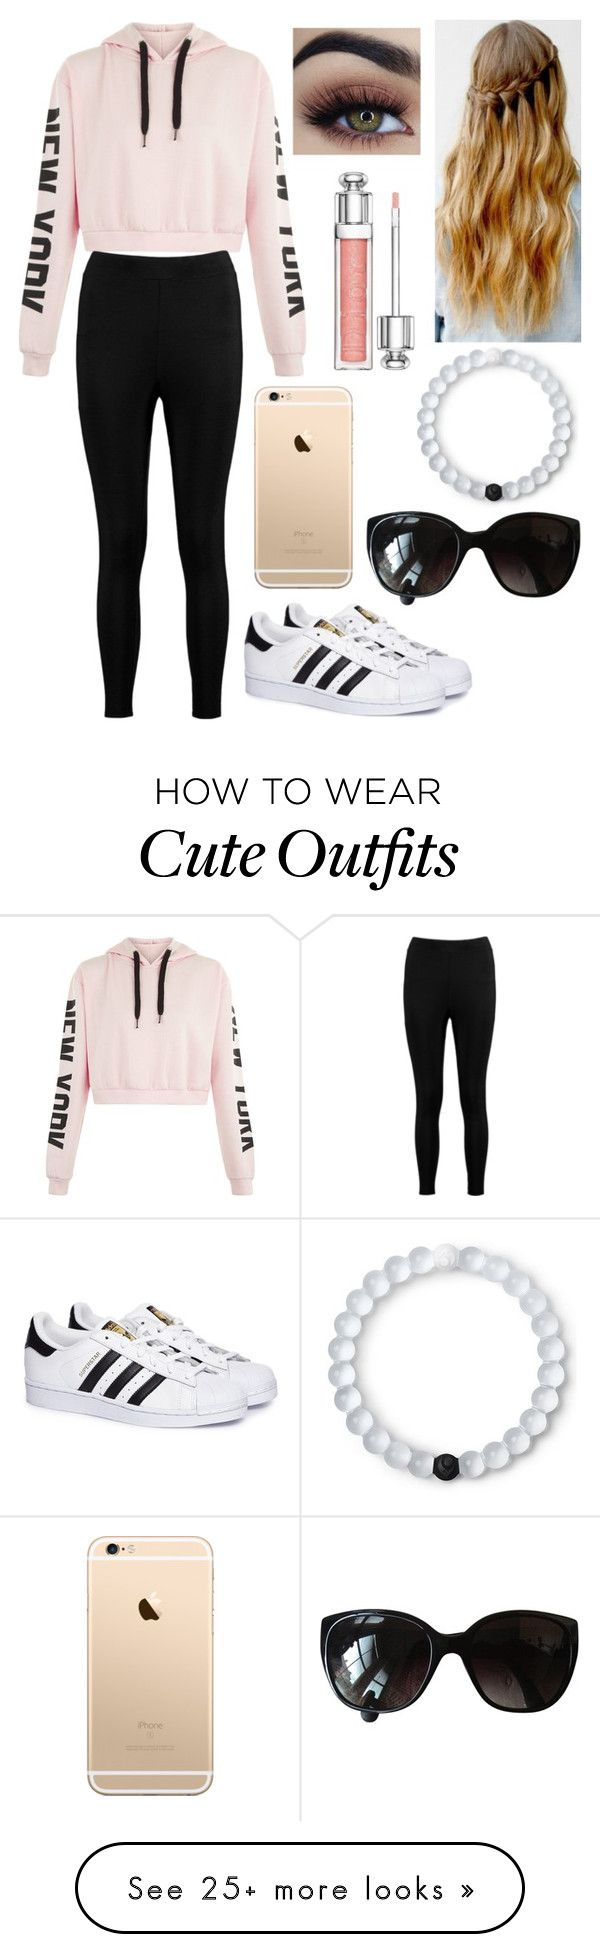 """""""Cute Outfit for A Chill Day"""" by ashrushzoo on Polyvore featuring Boohoo, adidas, Chanel, Lokai and Christian Dior"""